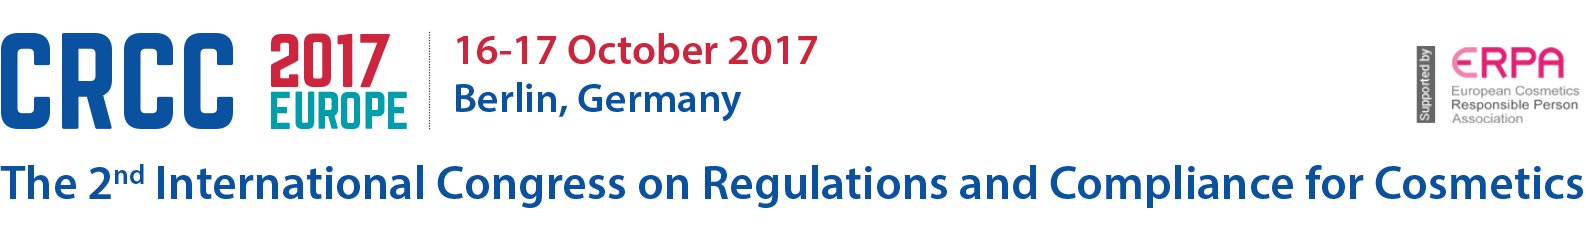 The 2nd International Congress on European Regulations and Compliance for Cosmetics (CRCC2017)